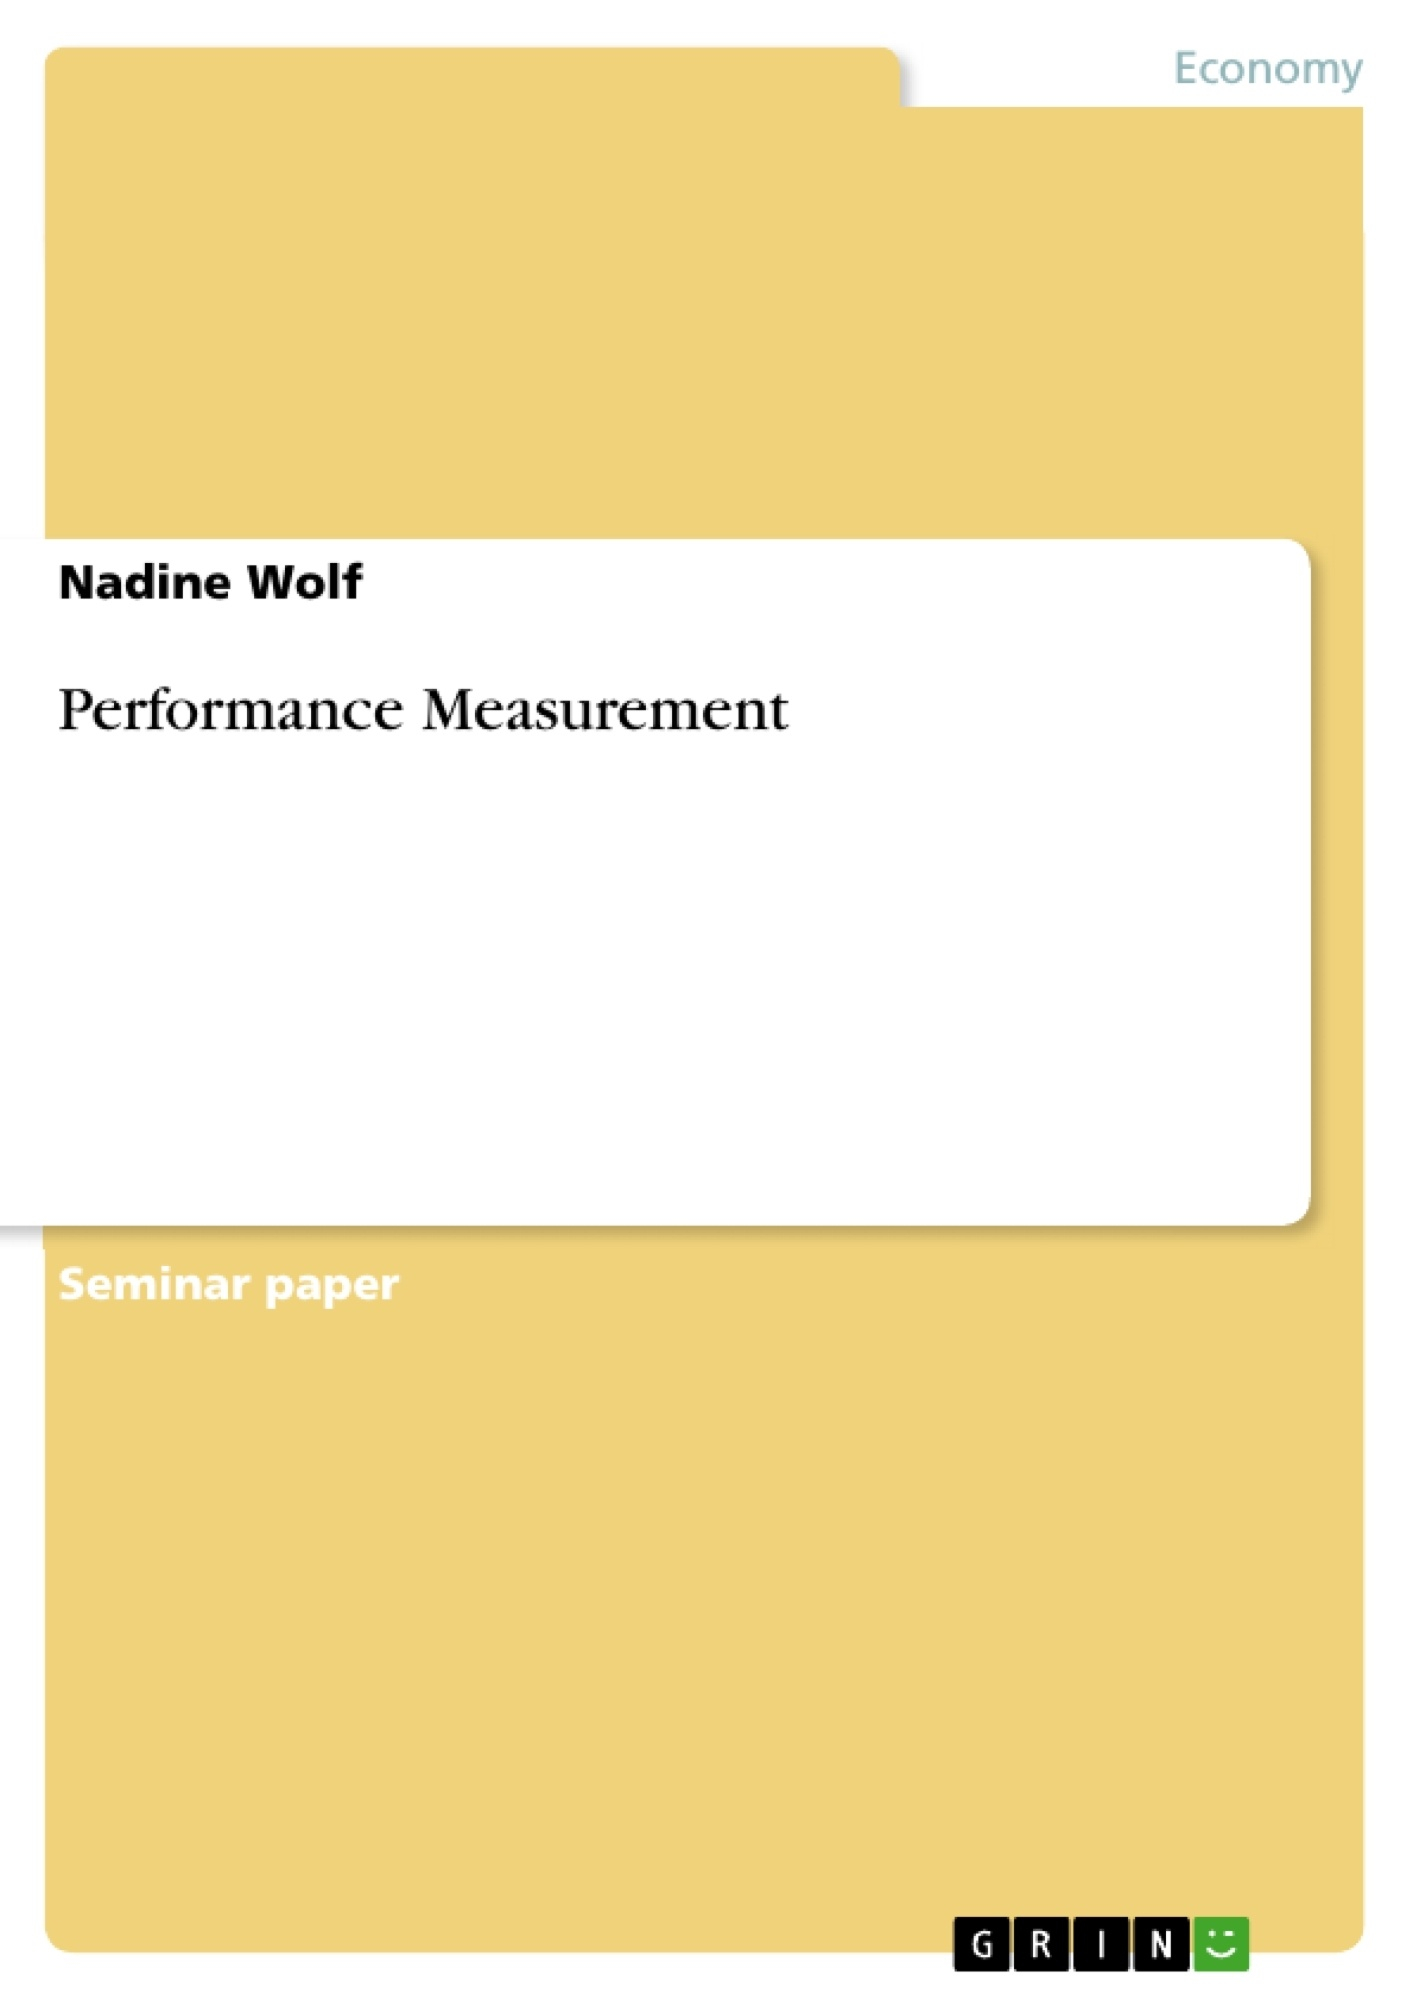 performance measurement research paper Prove the value of effective performance management this paper reviews six recent  the research examined performance in six  performance measurement to key.